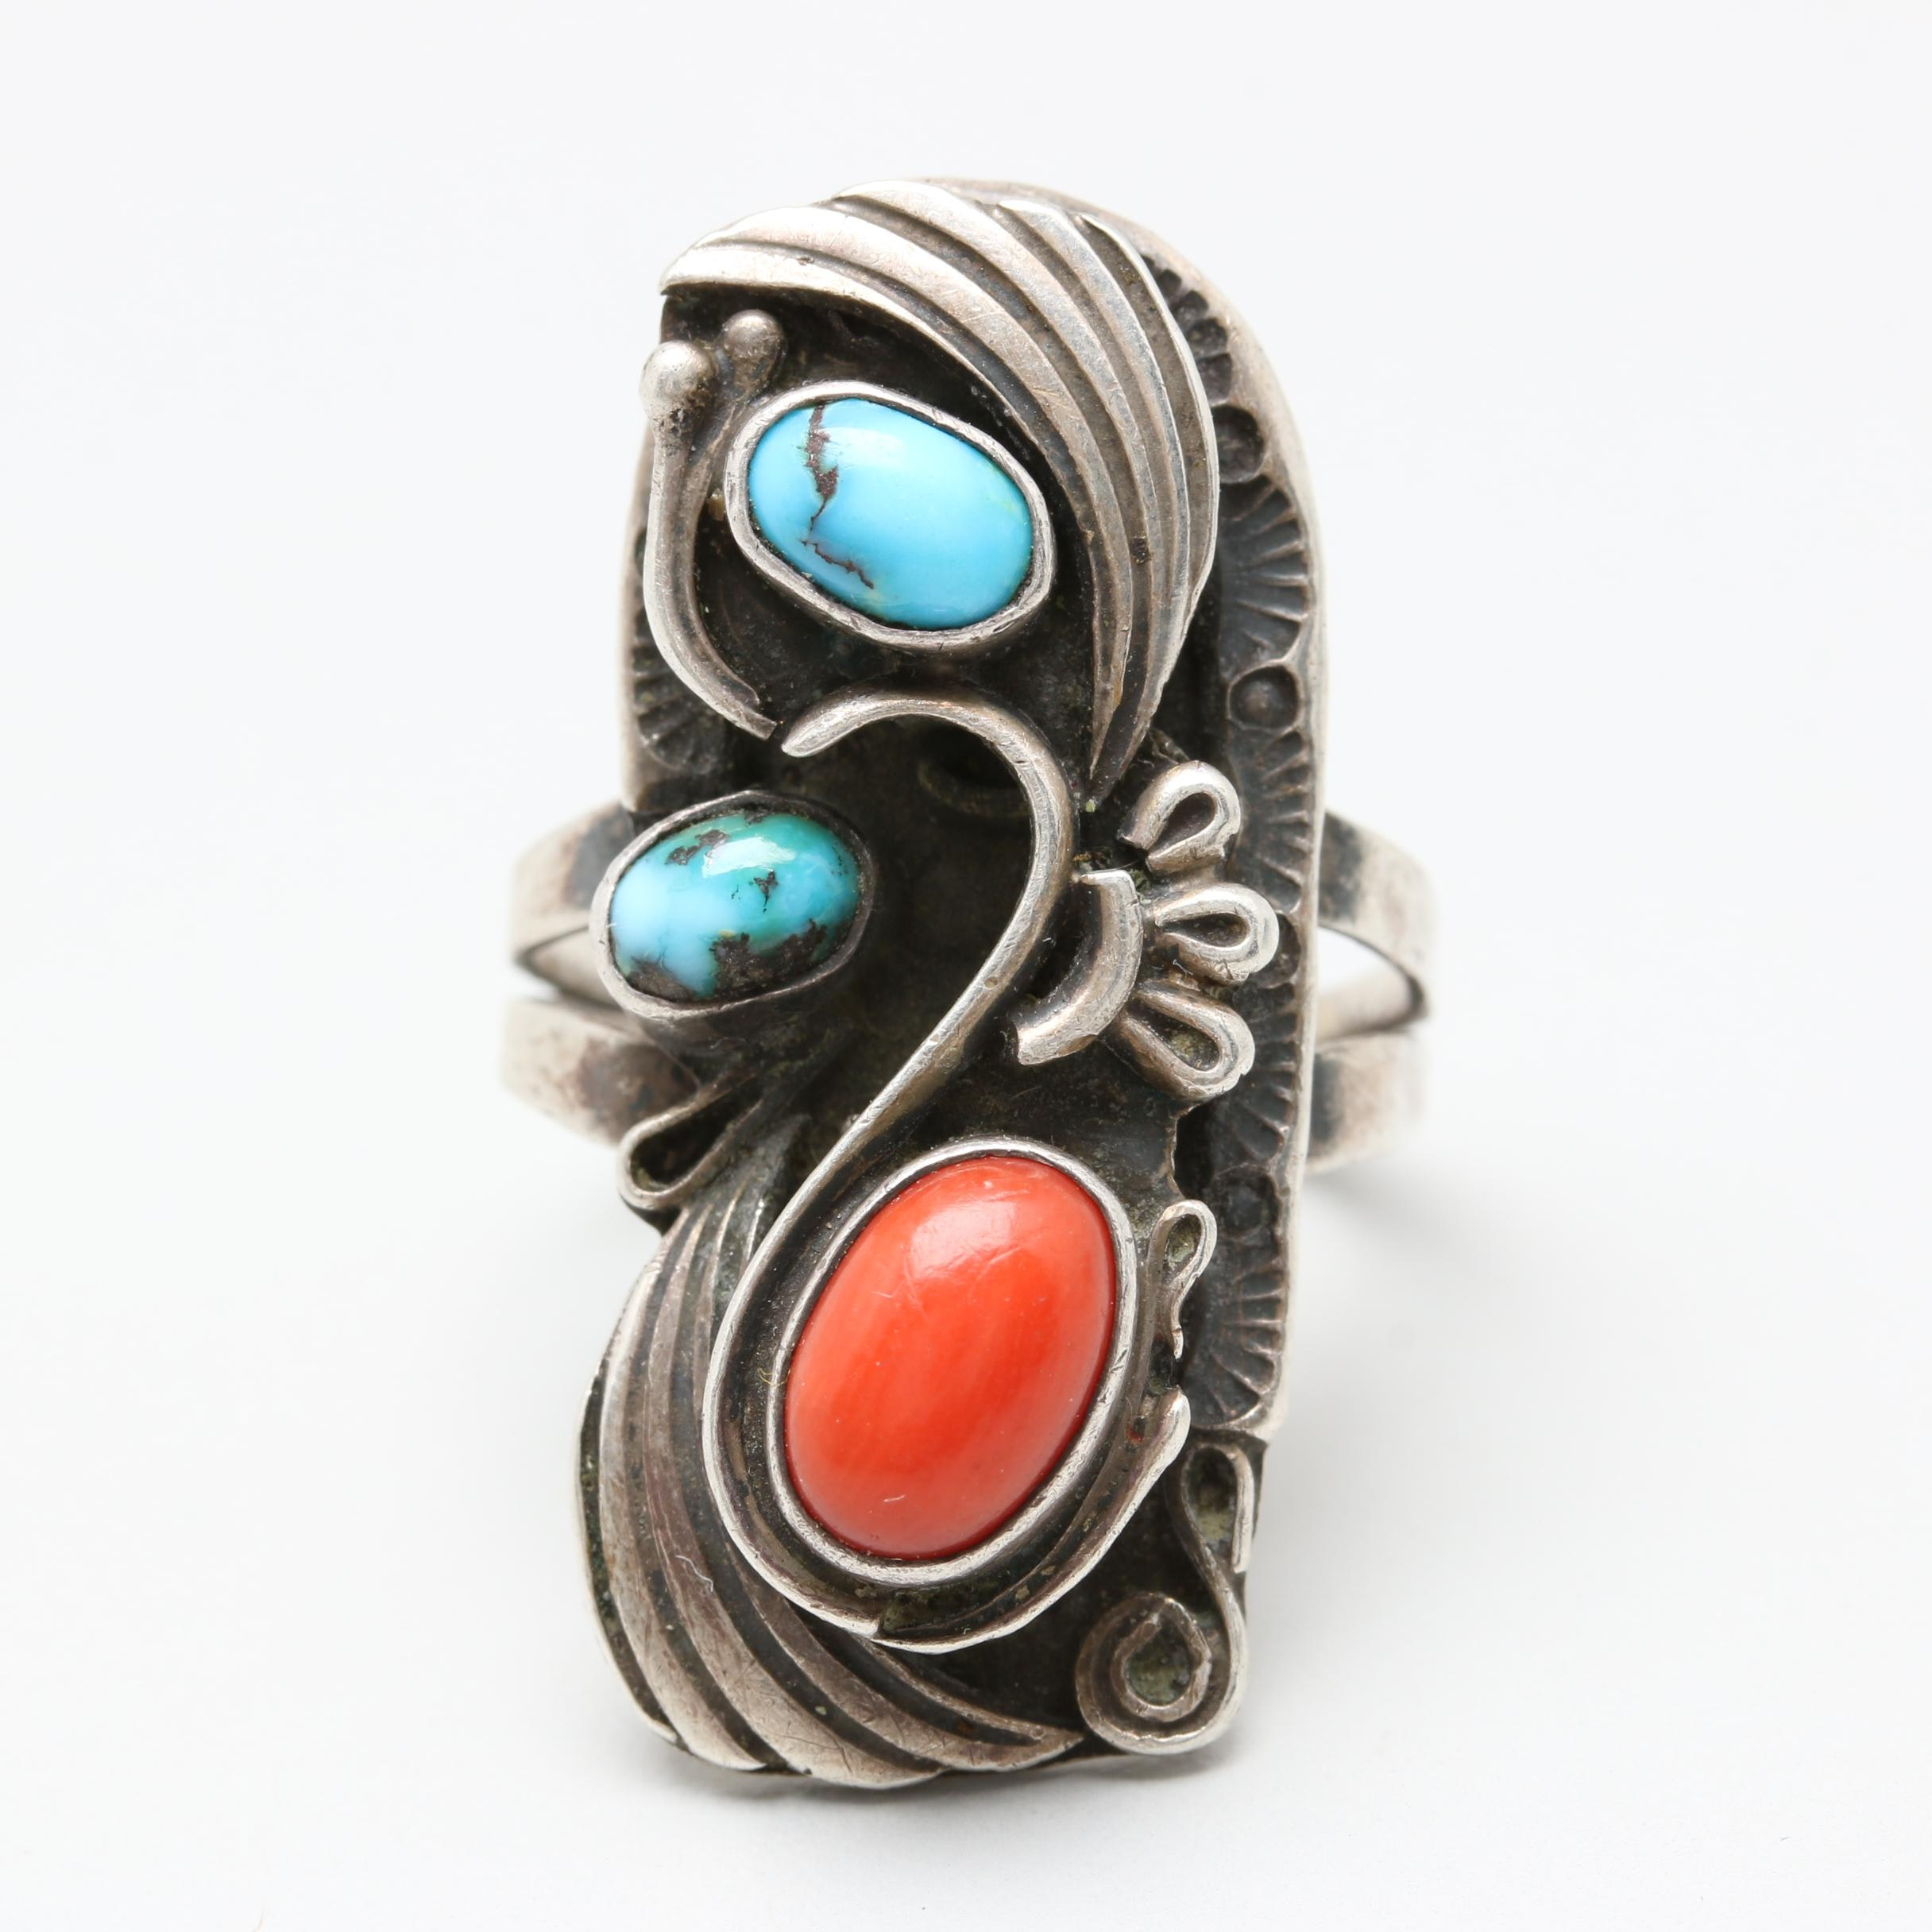 Raymond Secatero Navajo Diné Sterling Silver Turquoise and Coral Ring